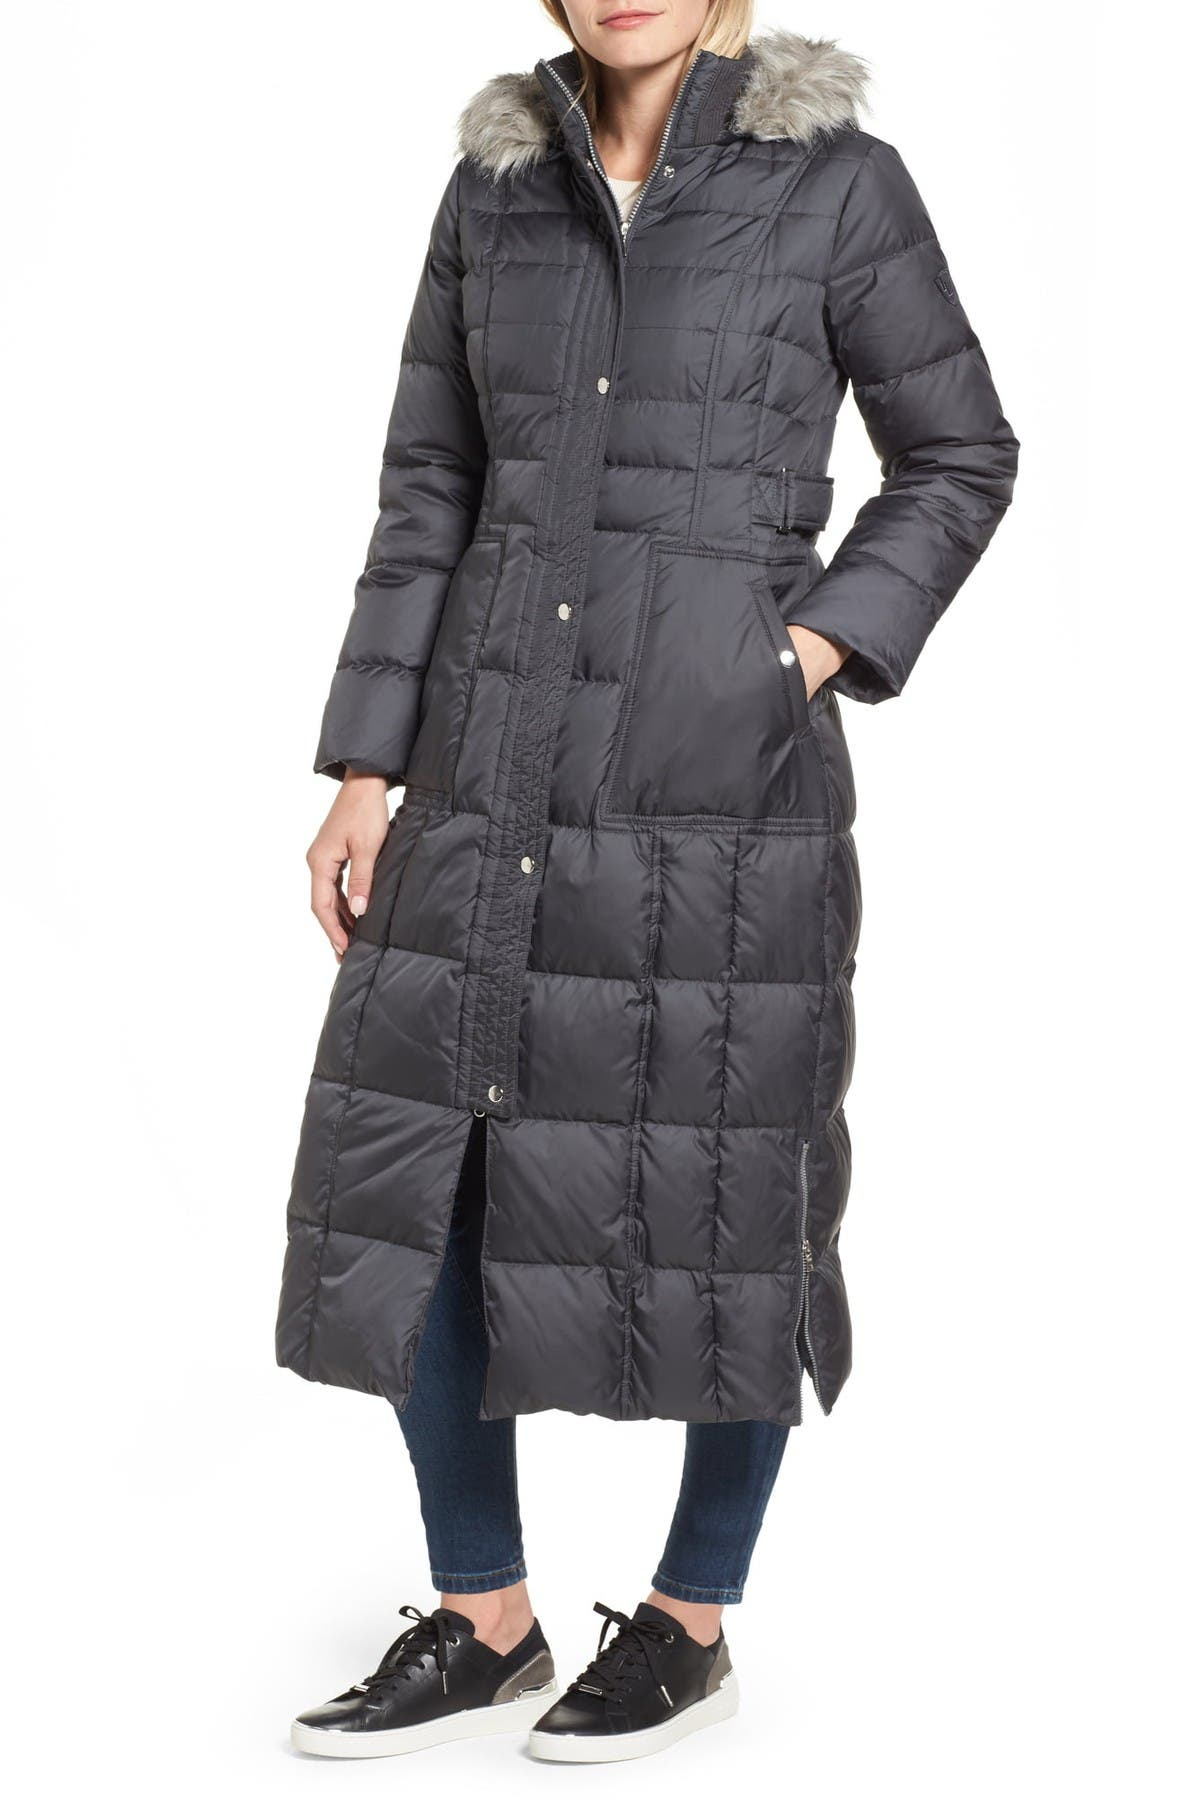 Image of Larry Levine Quilted Maxi Faux Fur Trim Hooded Coat